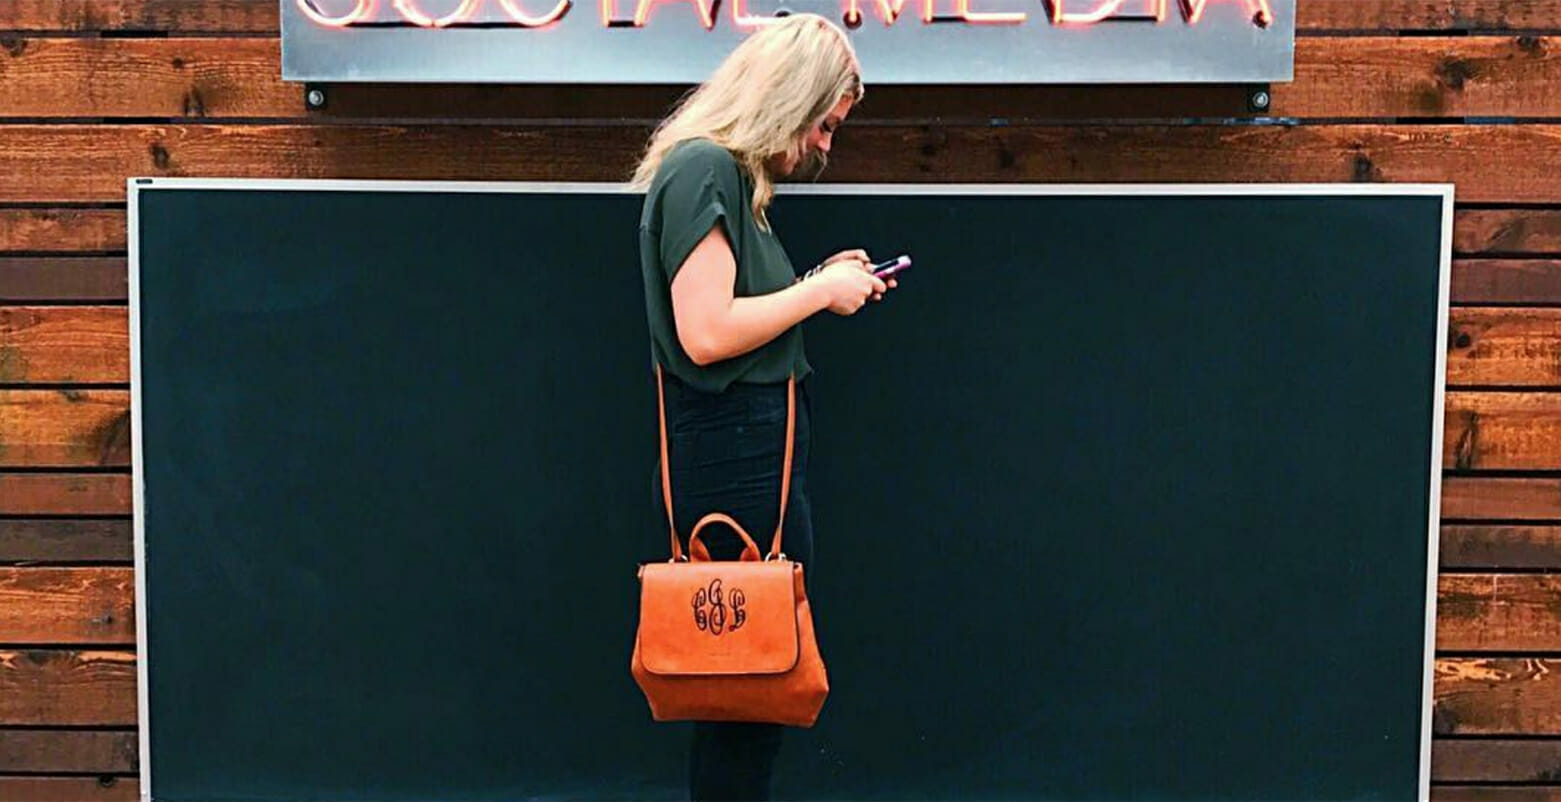 JLL ShopPings courtney on phone